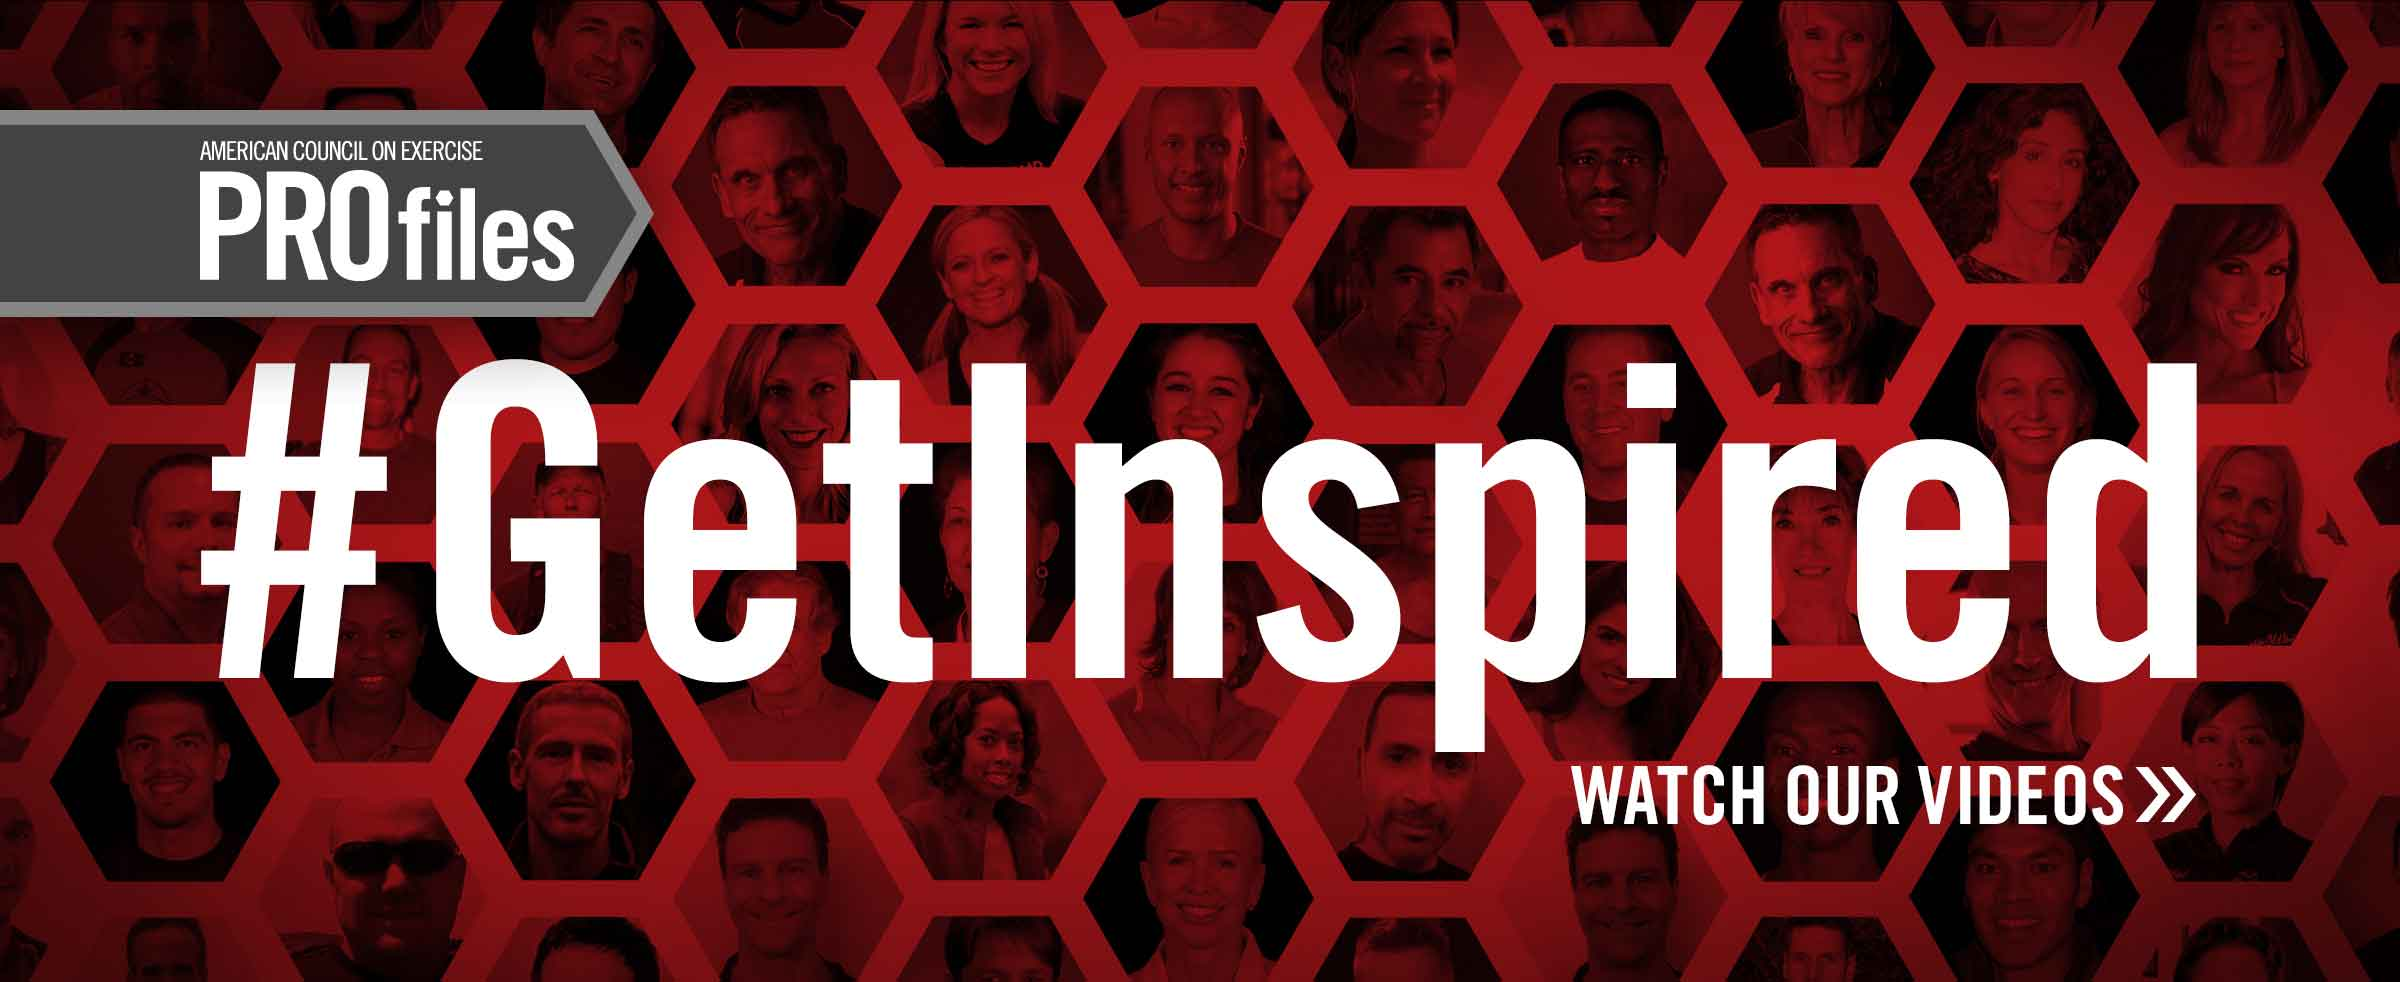 Profiles - #GetInspired